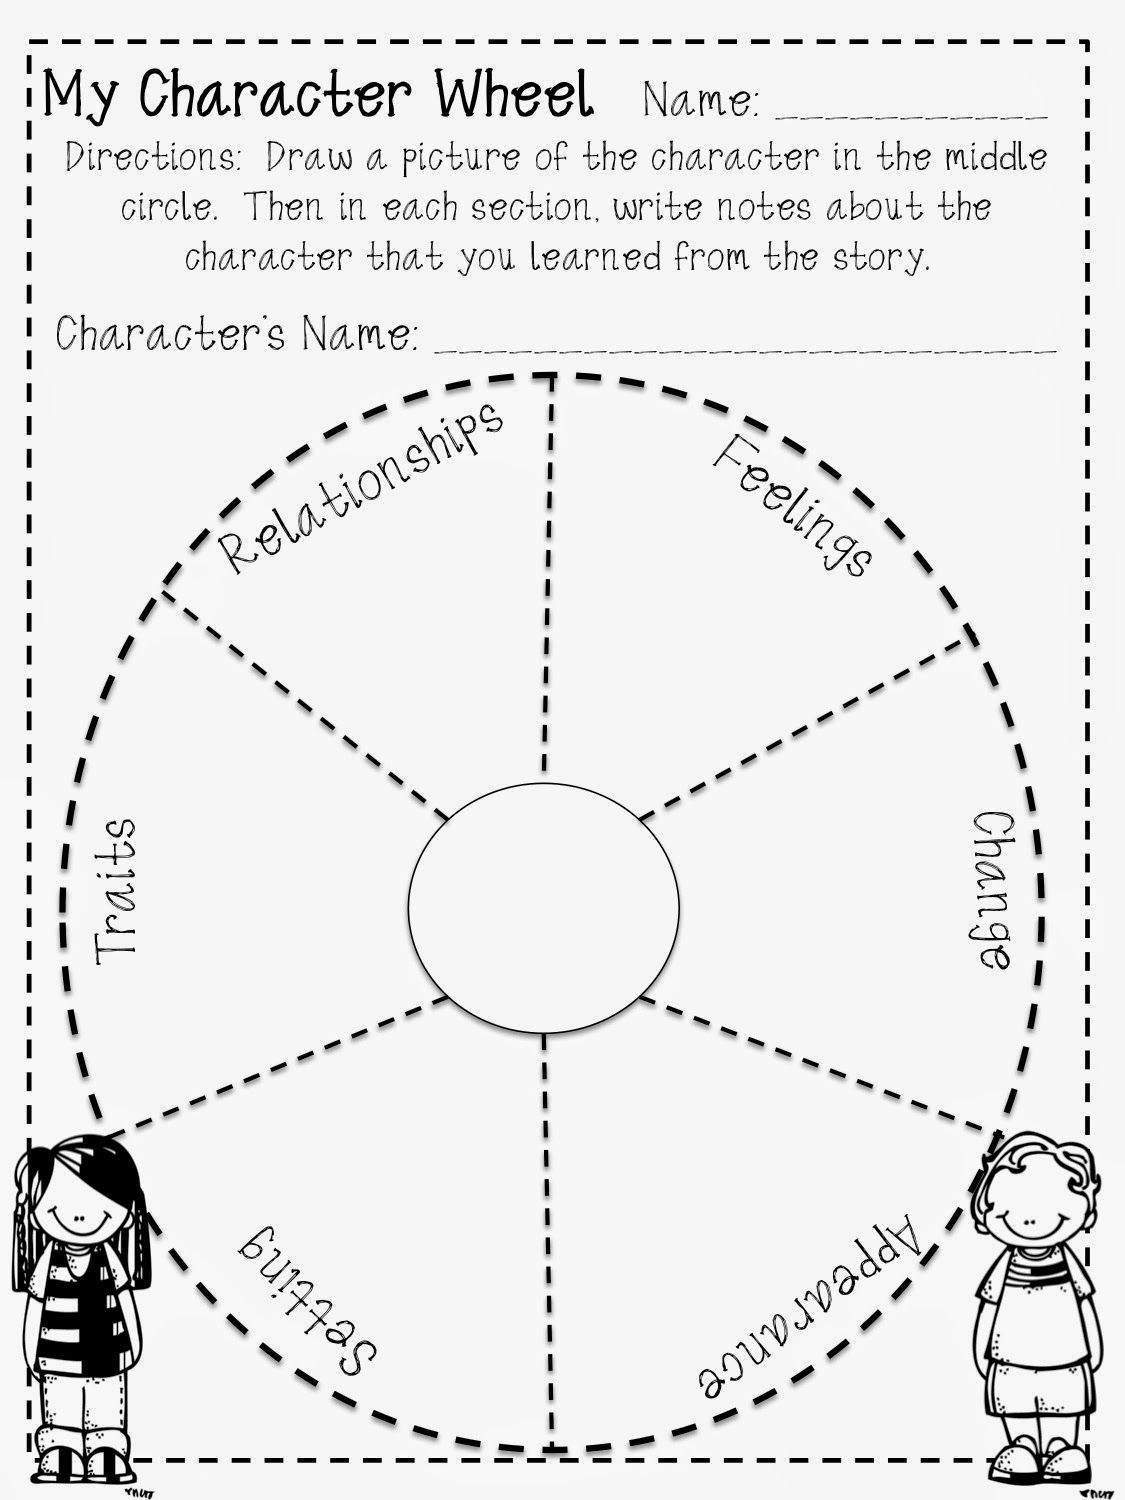 hight resolution of Reading Character Wheel Freebie   Reading classroom